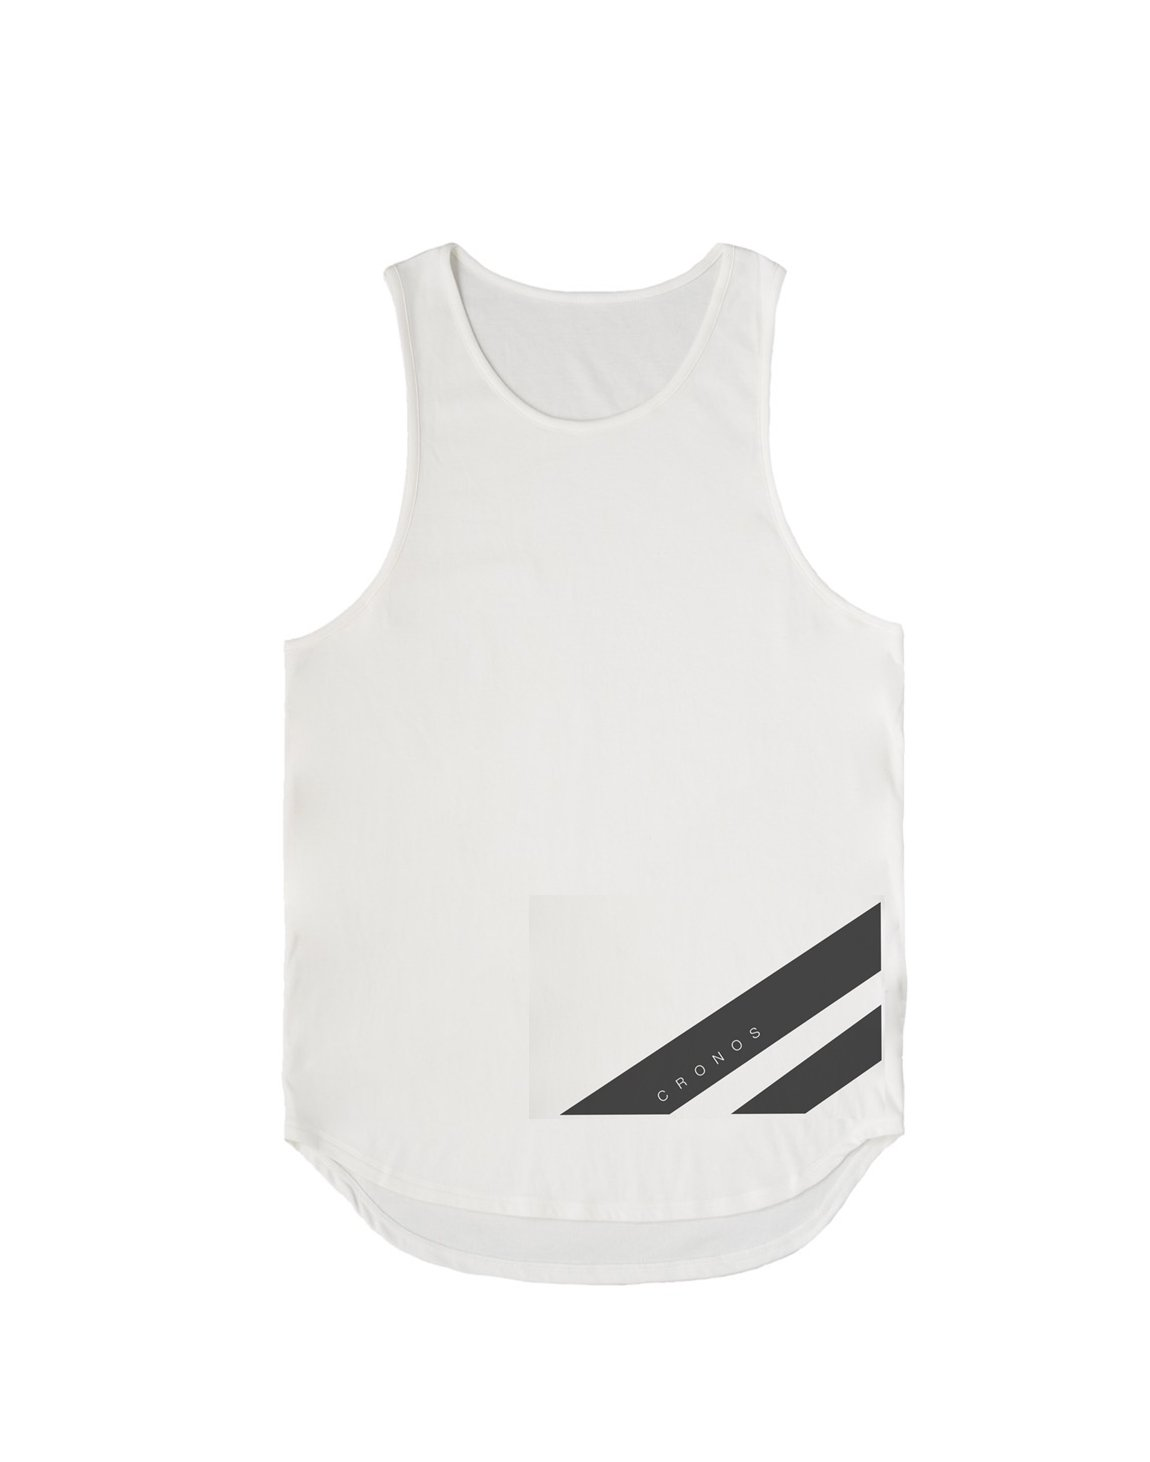 <img class='new_mark_img1' src='https://img.shop-pro.jp/img/new/icons55.gif' style='border:none;display:inline;margin:0px;padding:0px;width:auto;' />CRONOS NEW STRIPE LOGO TANKTOP【WHITE】